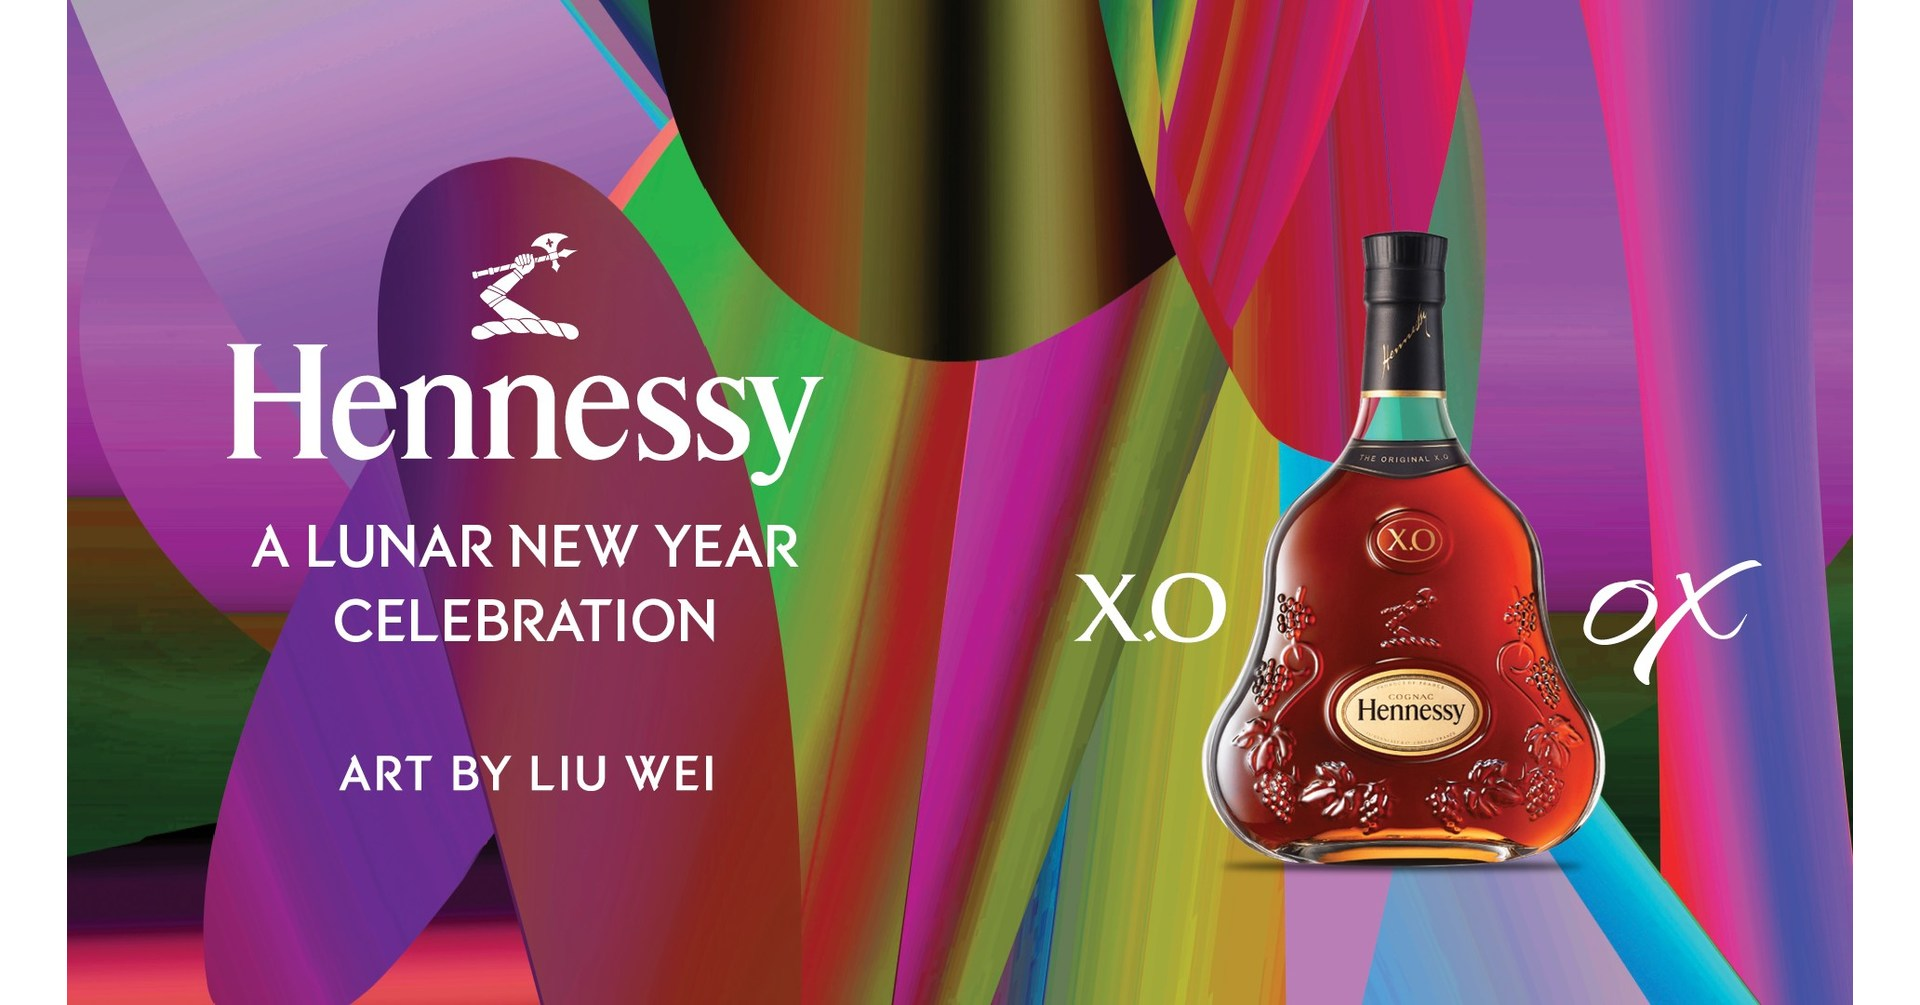 www.prnewswire.com: Henry Golding and Eddie Huang Join Hennessy X.O on February 18 to Ring in the Year of the Ox